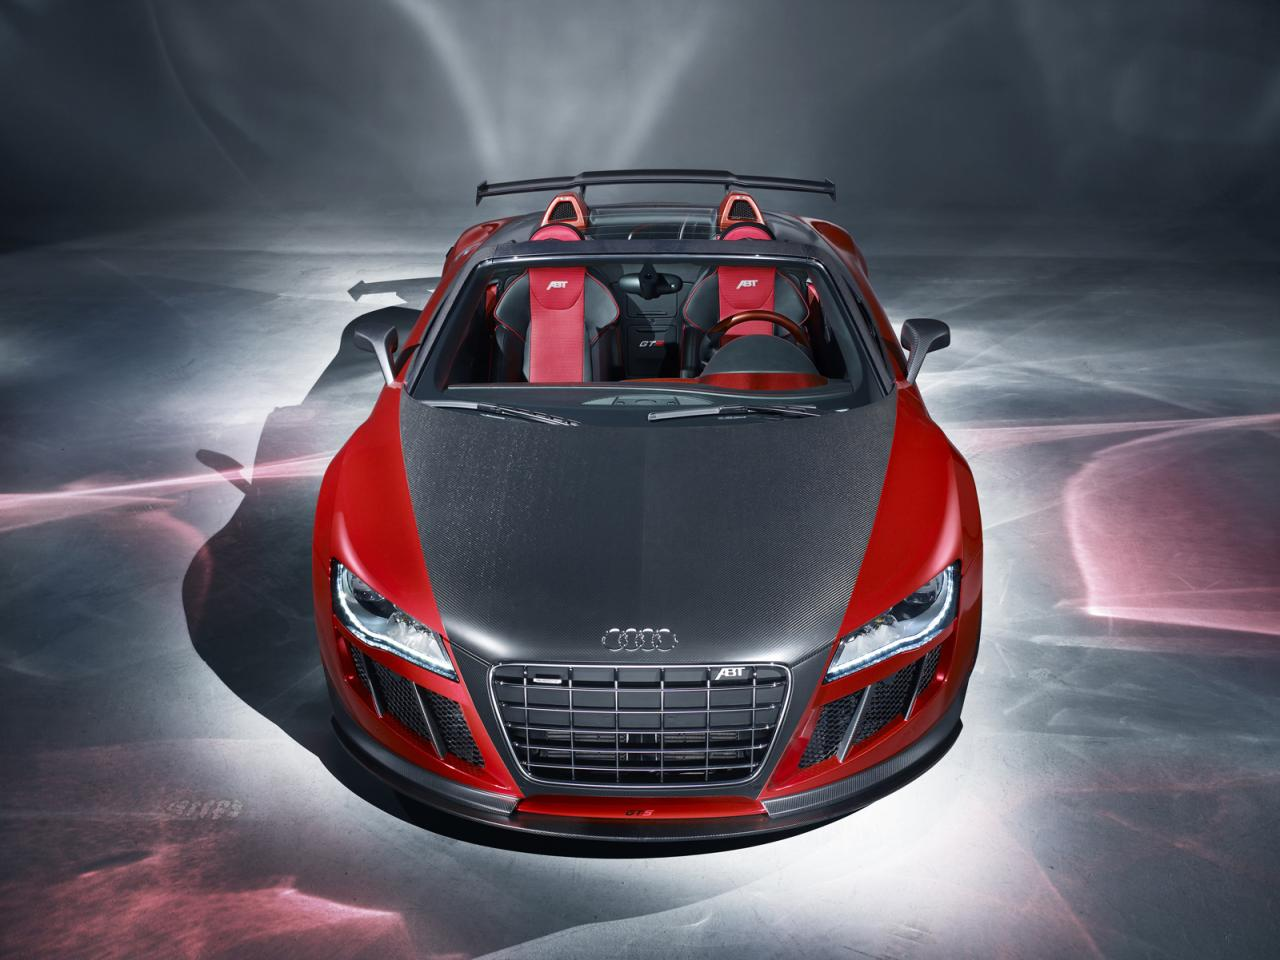 Abt R8 GT S Sportline Abt R8 GT S Sportline to debut the topless version in Geneva